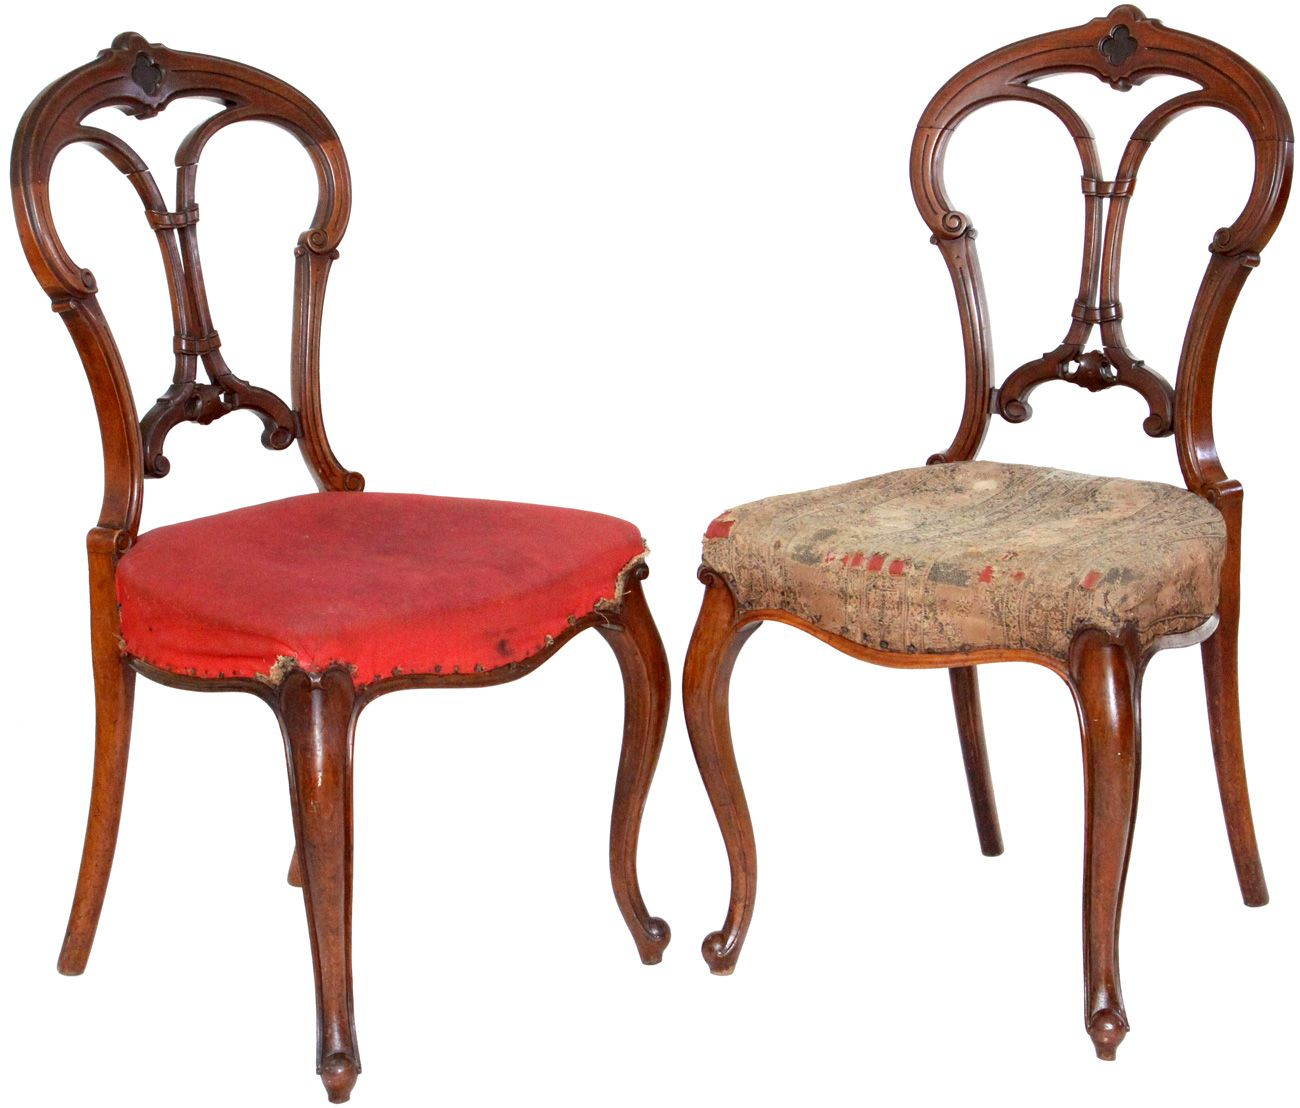 antique furniture | pair of Antique Victorian Balloon Back Chairs with  carved back . - Antique Furniture Pair Of Antique Victorian Balloon Back Chairs